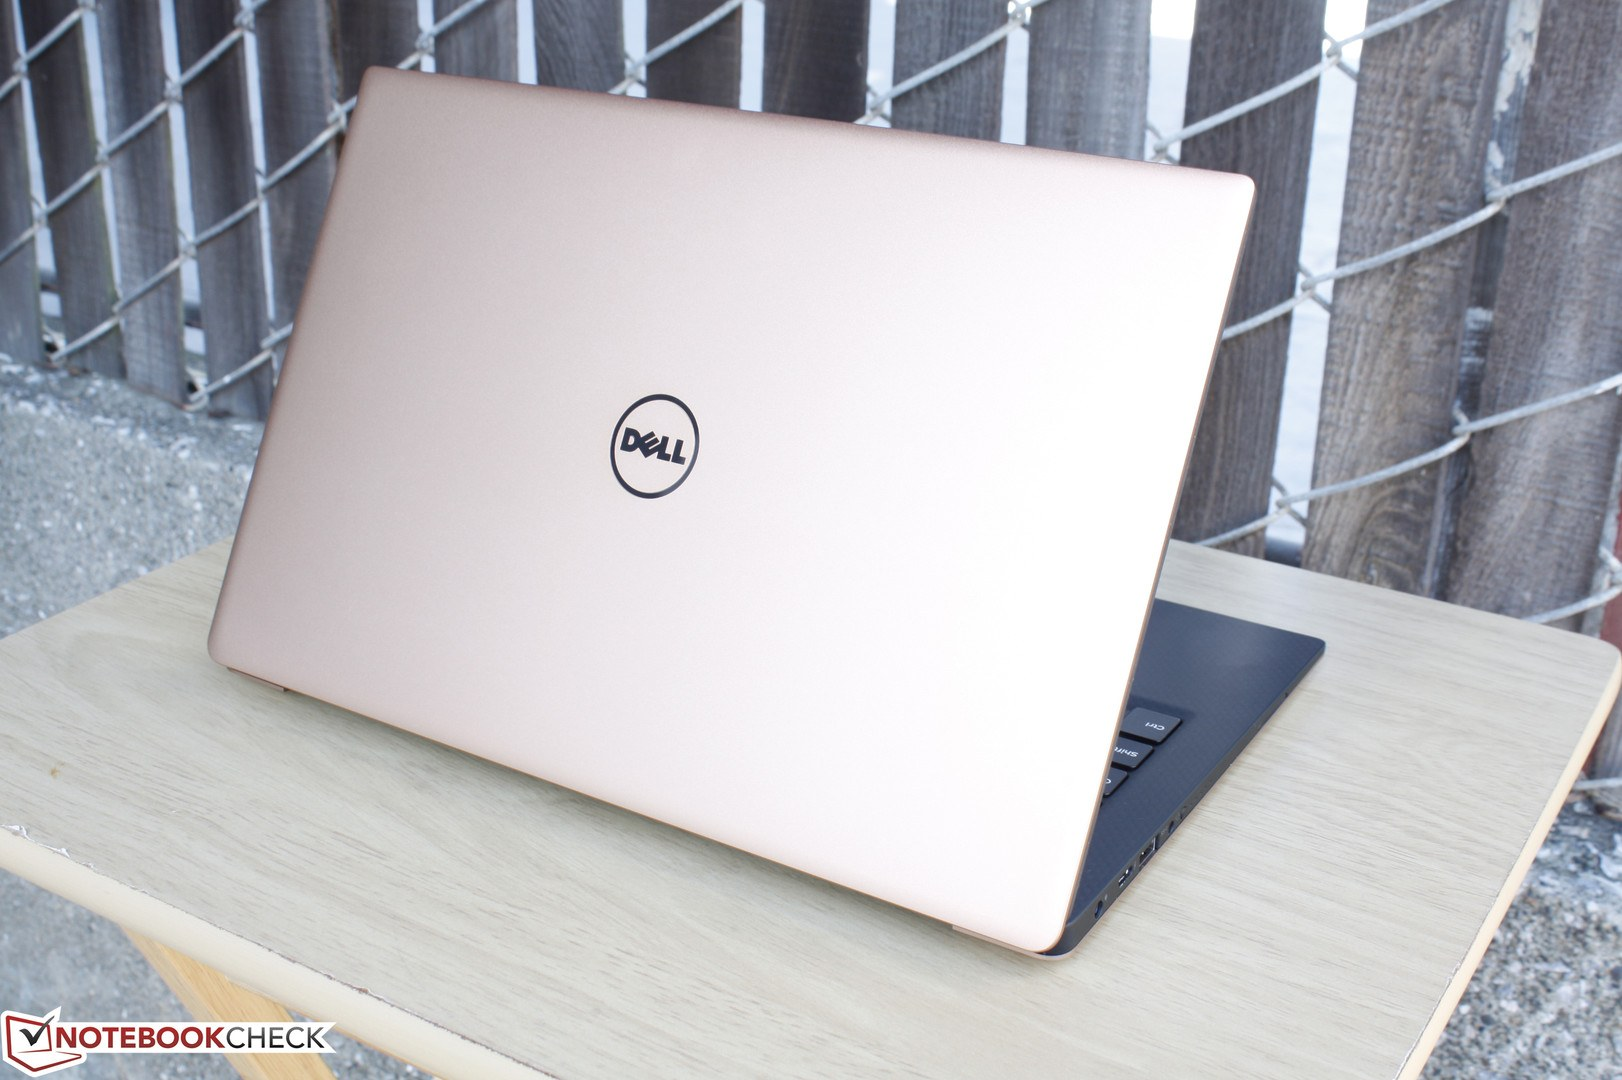 Dell XPS 13 9360 13.3 inch Windows 10